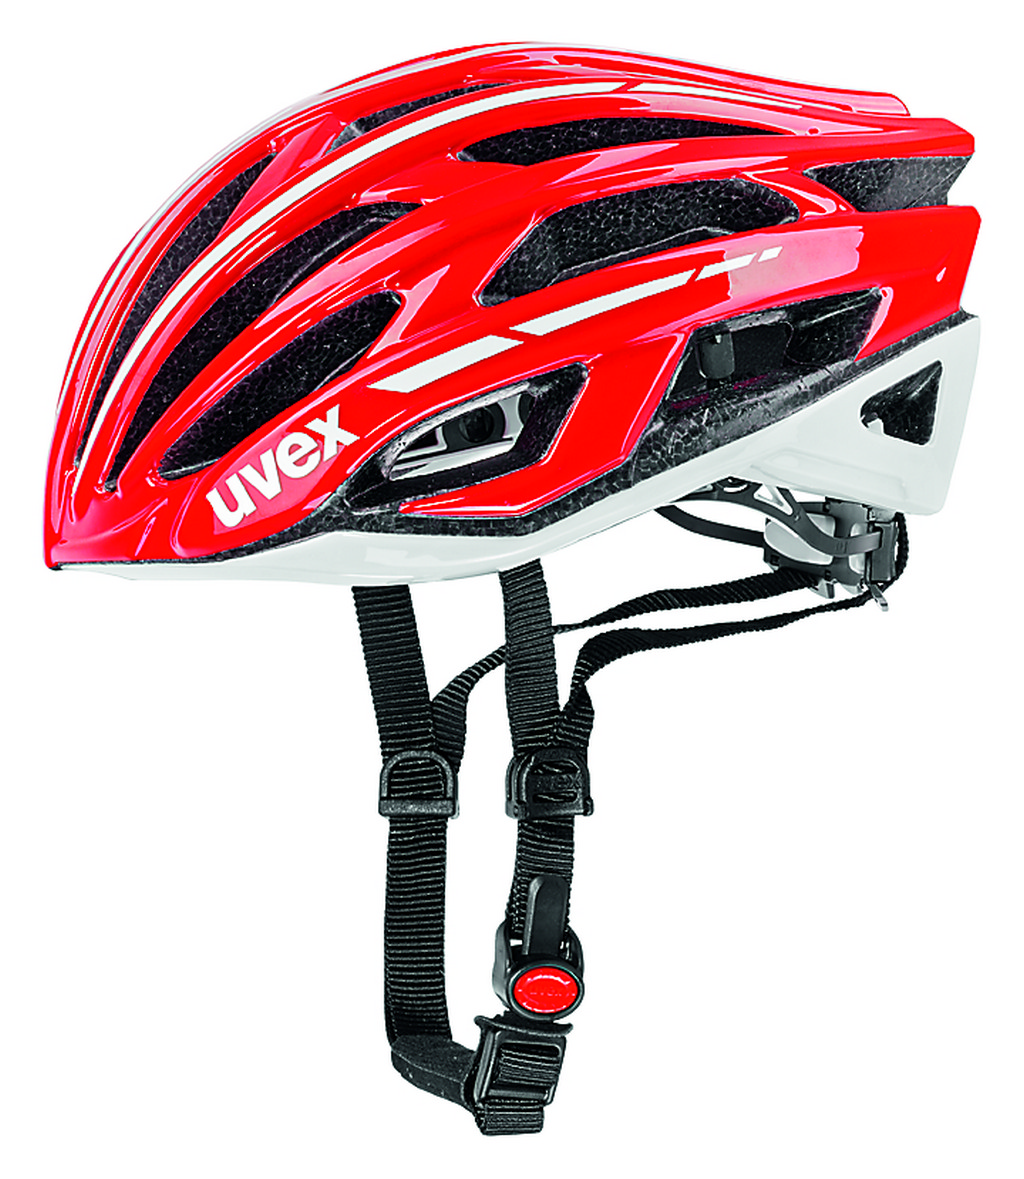 UVEX RACE 5, RED-WHITE 2014 52-55 cm